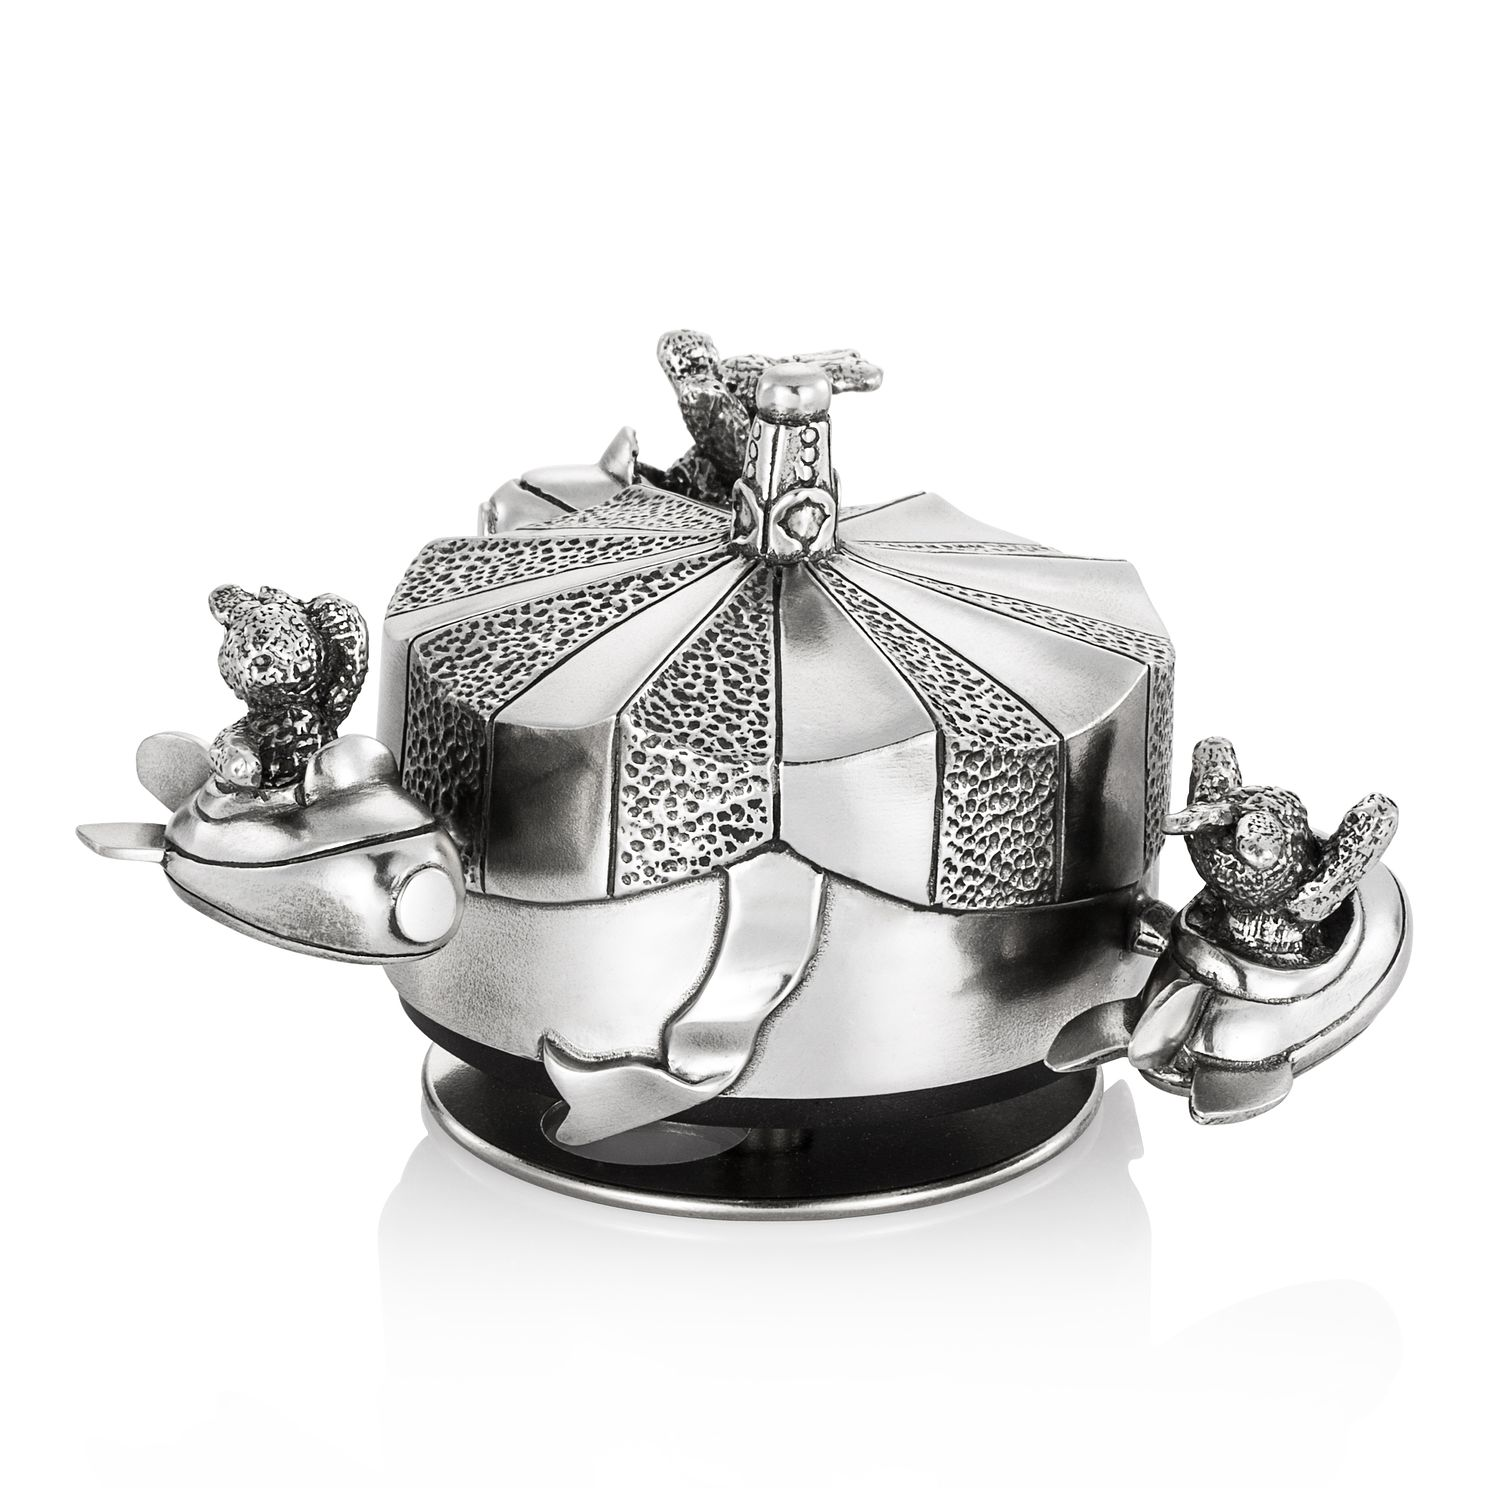 Royal Selangor Children's Bunny Carousel Figurine - Product number 4415035